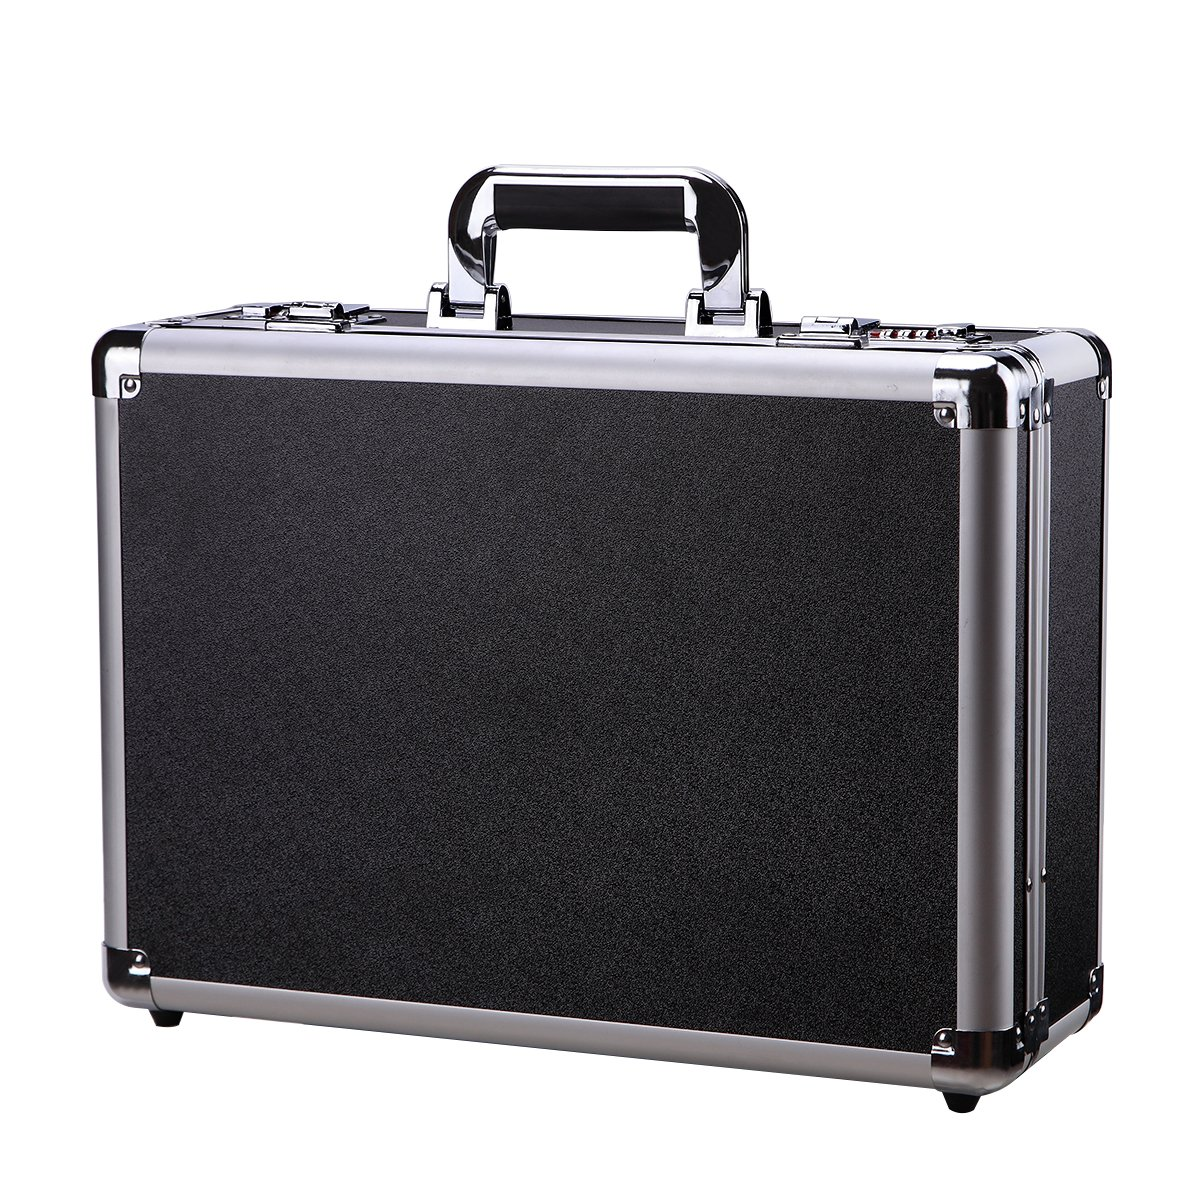 Black Aluminum Case Flight Case Tool Box Silver Metal Frame Hard Carrying Case with Dual Locks Gzyahui